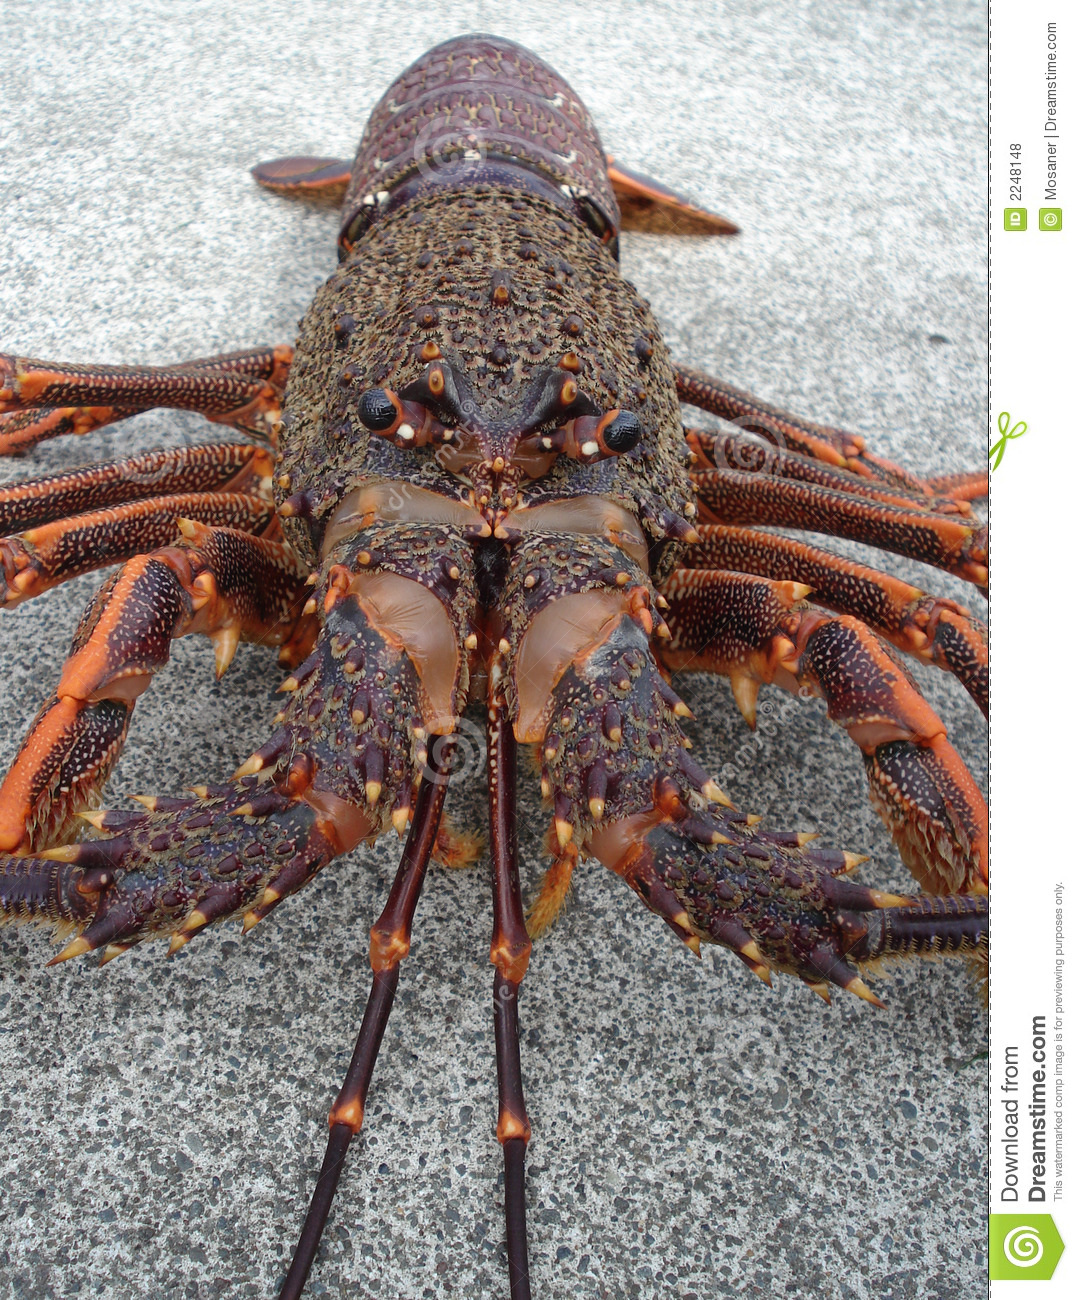 Crayfish Spiny Rock Lobster Stock Photo - Image: 2248148